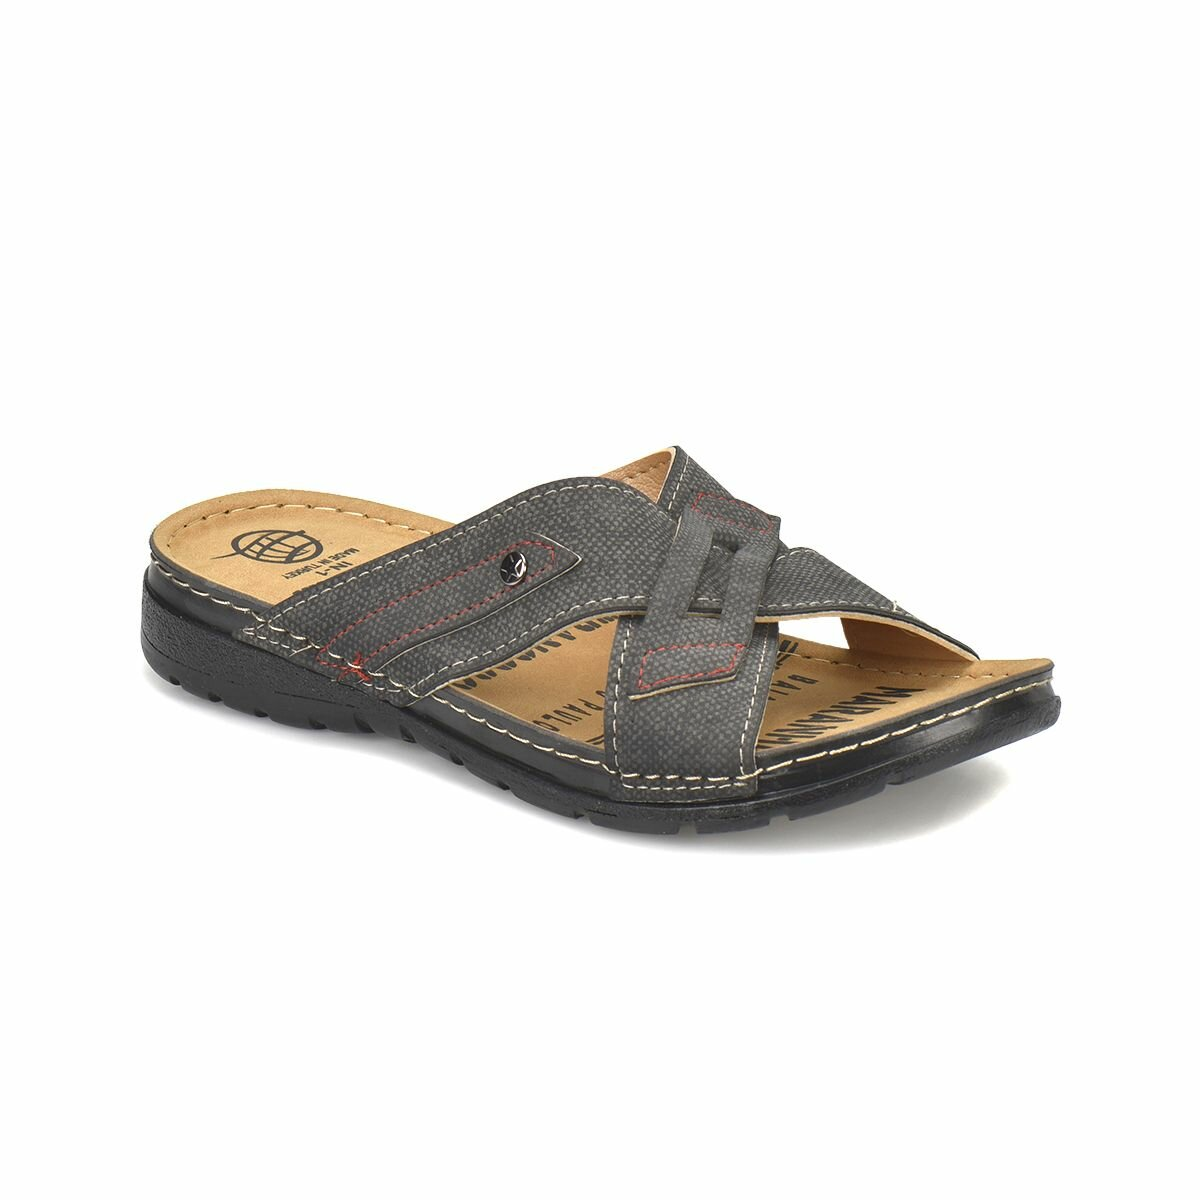 IN FLO-1 Navy Blue Male Slippers Panama Club